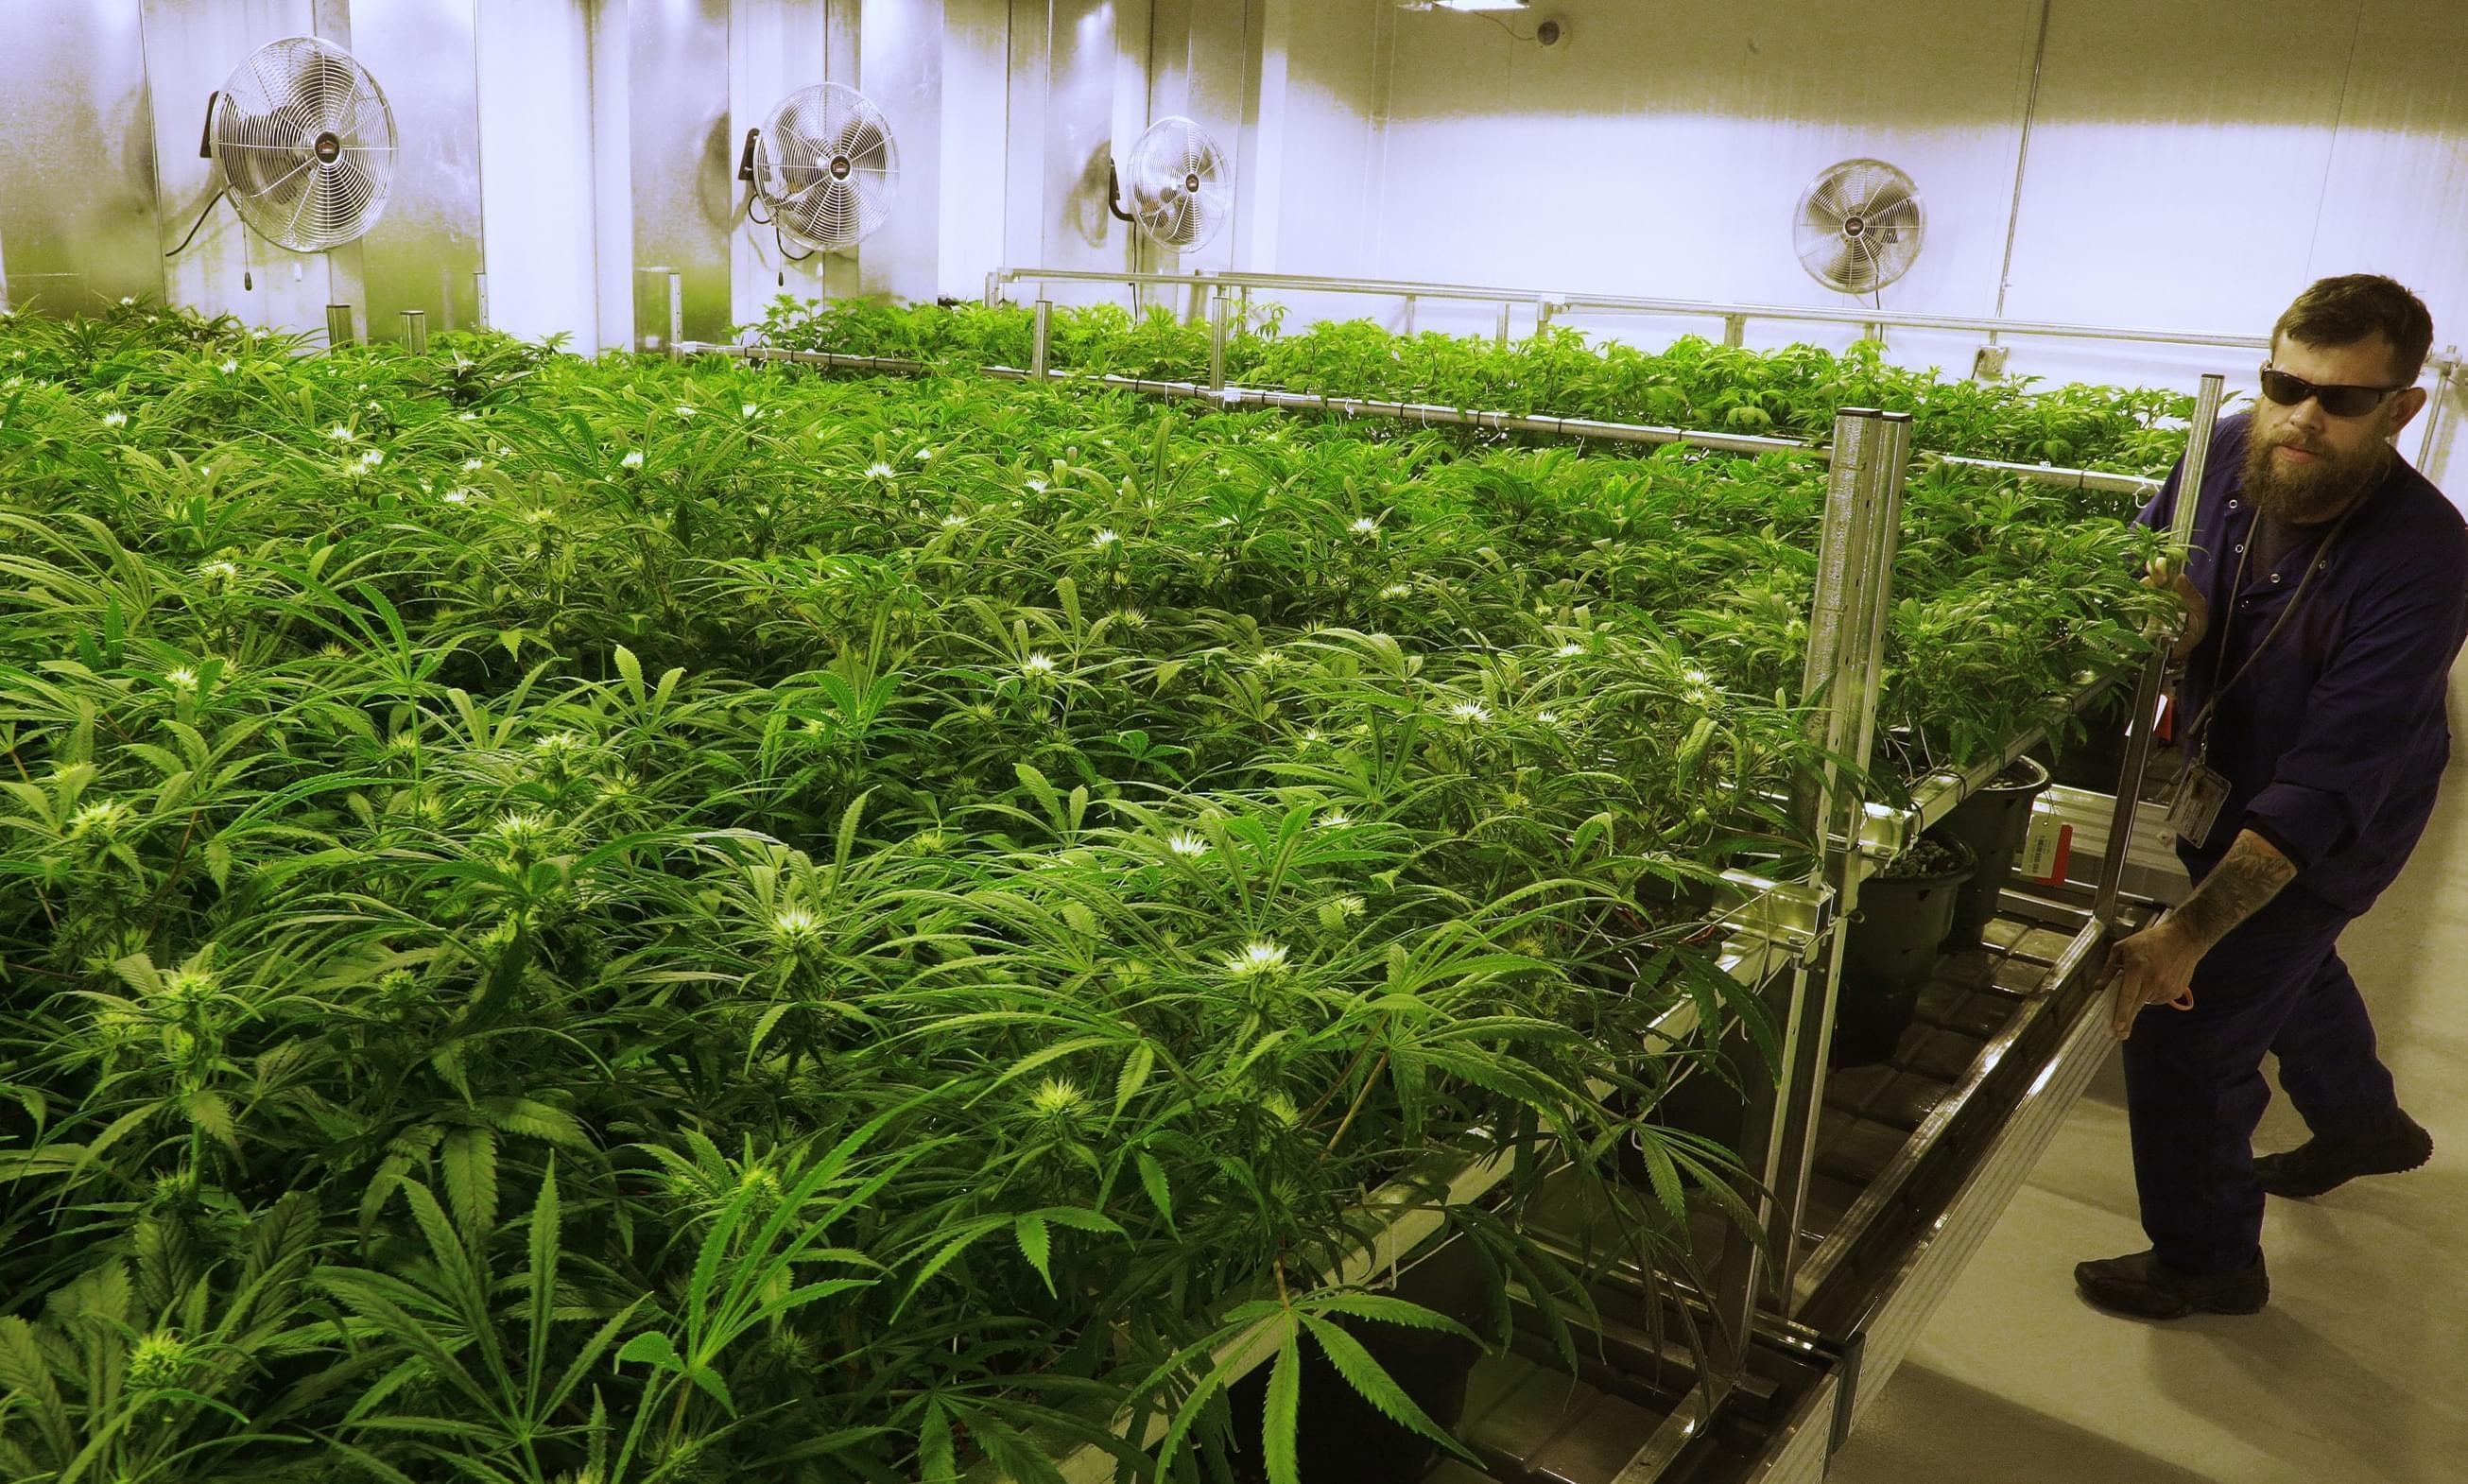 n this Sept. 15, 2015 file photo, lead grower Dave Wilson cares for marijuana plants at the Ataraxia medical marijuana cultivation center in Albion, Ill.